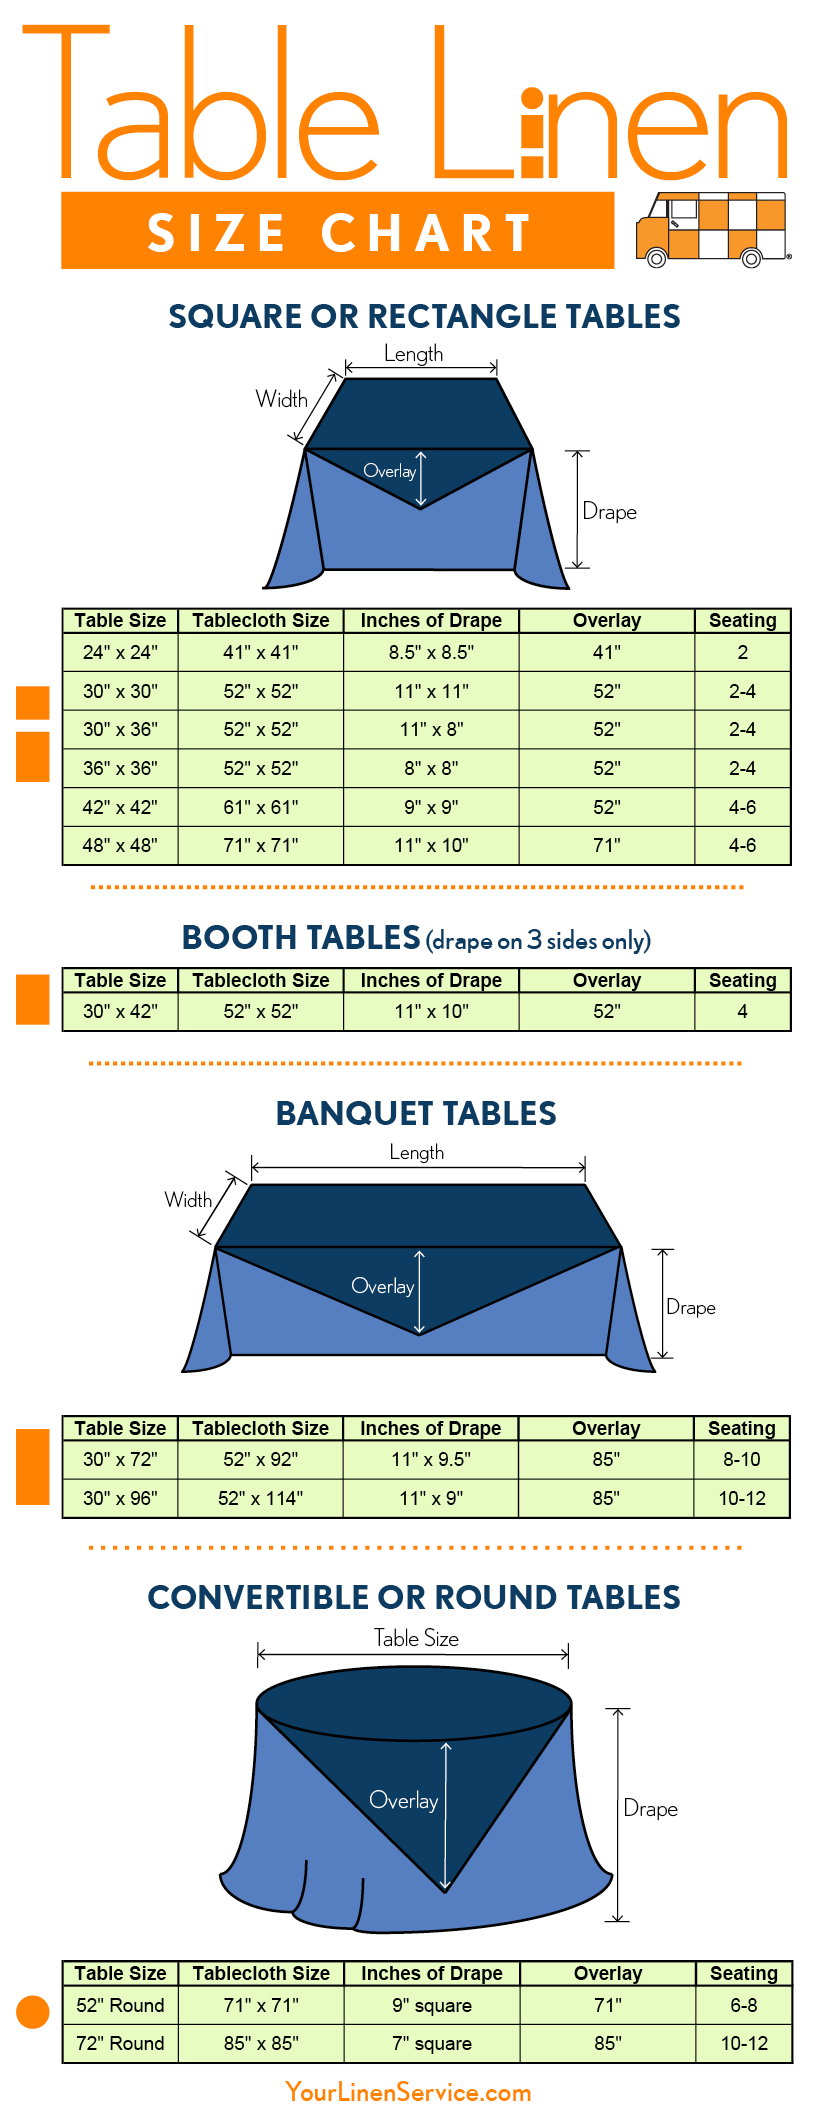 Bon Table Linen Size Chart. Square, Rectangle, Circle And Banquet Tablecloth  Sizes And Overlay Sizes Reference.